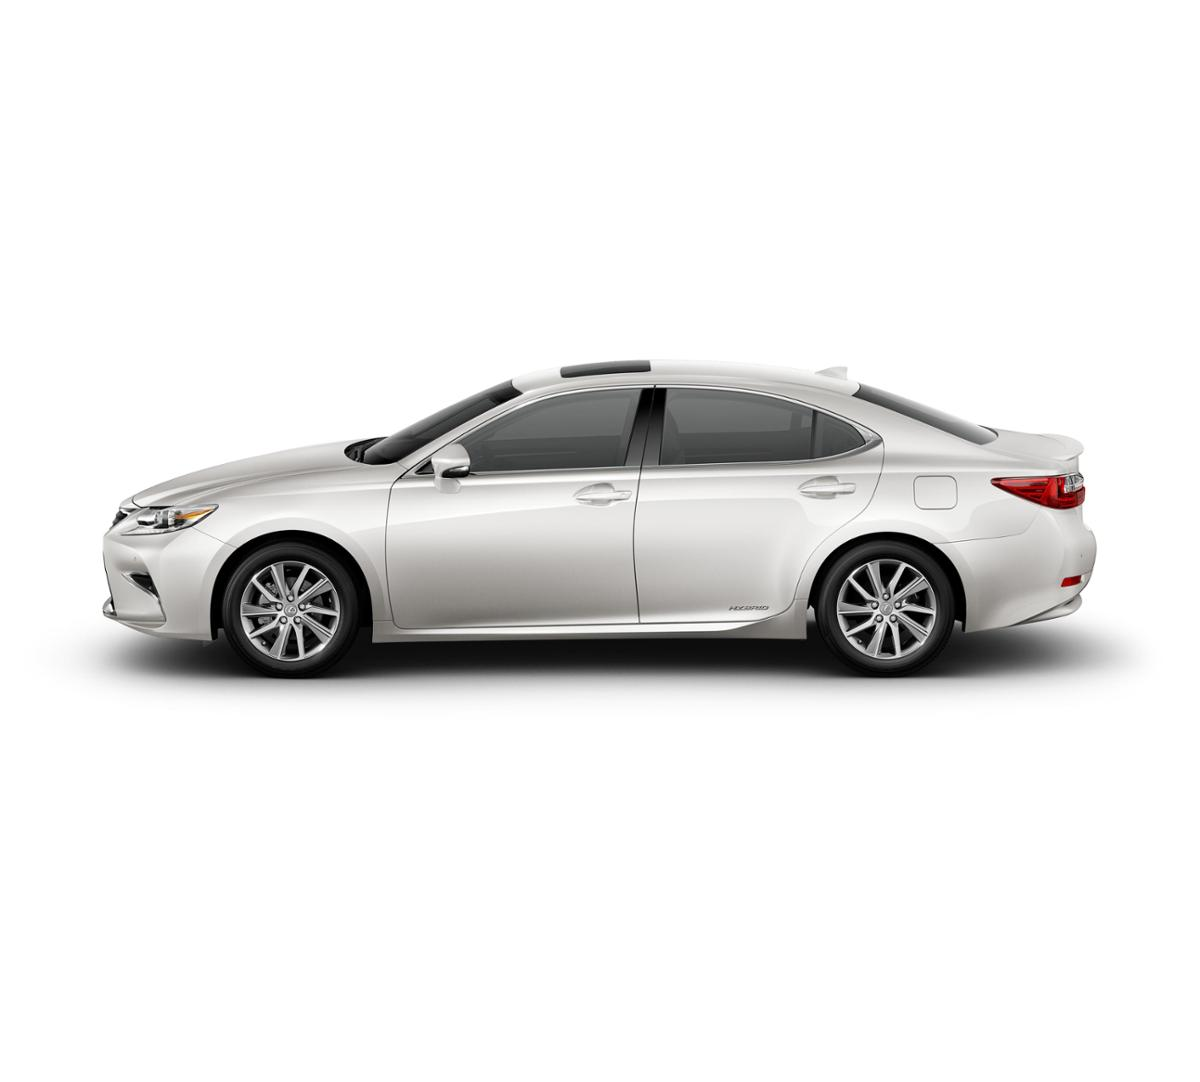 2018 Lexus ES 300h Vehicle Photo in Fort Worth, TX 76132